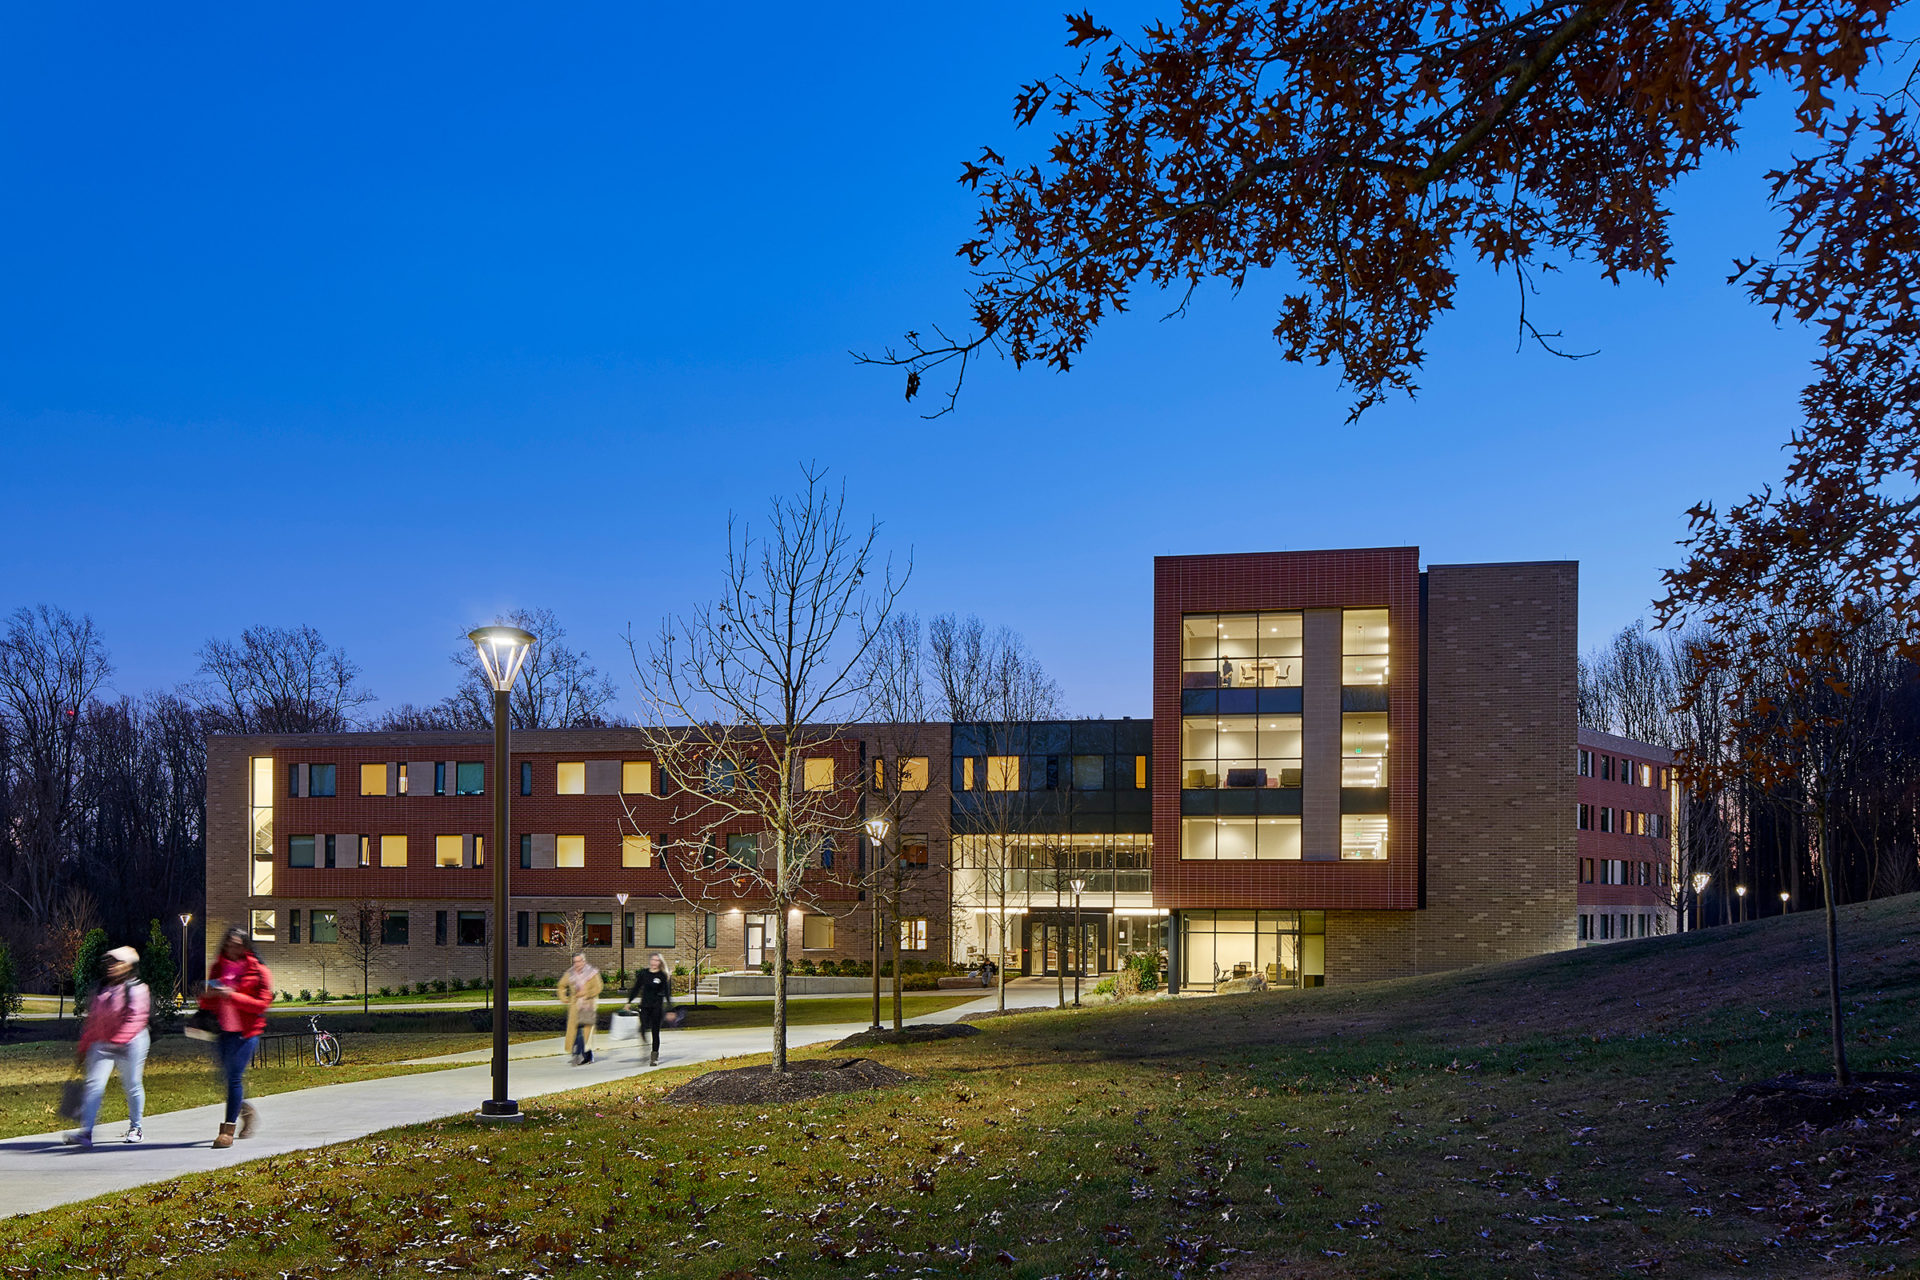 Orchard Residence Hall at Penn State Brandywine in Media, PA; Architect: Clark Nexsen